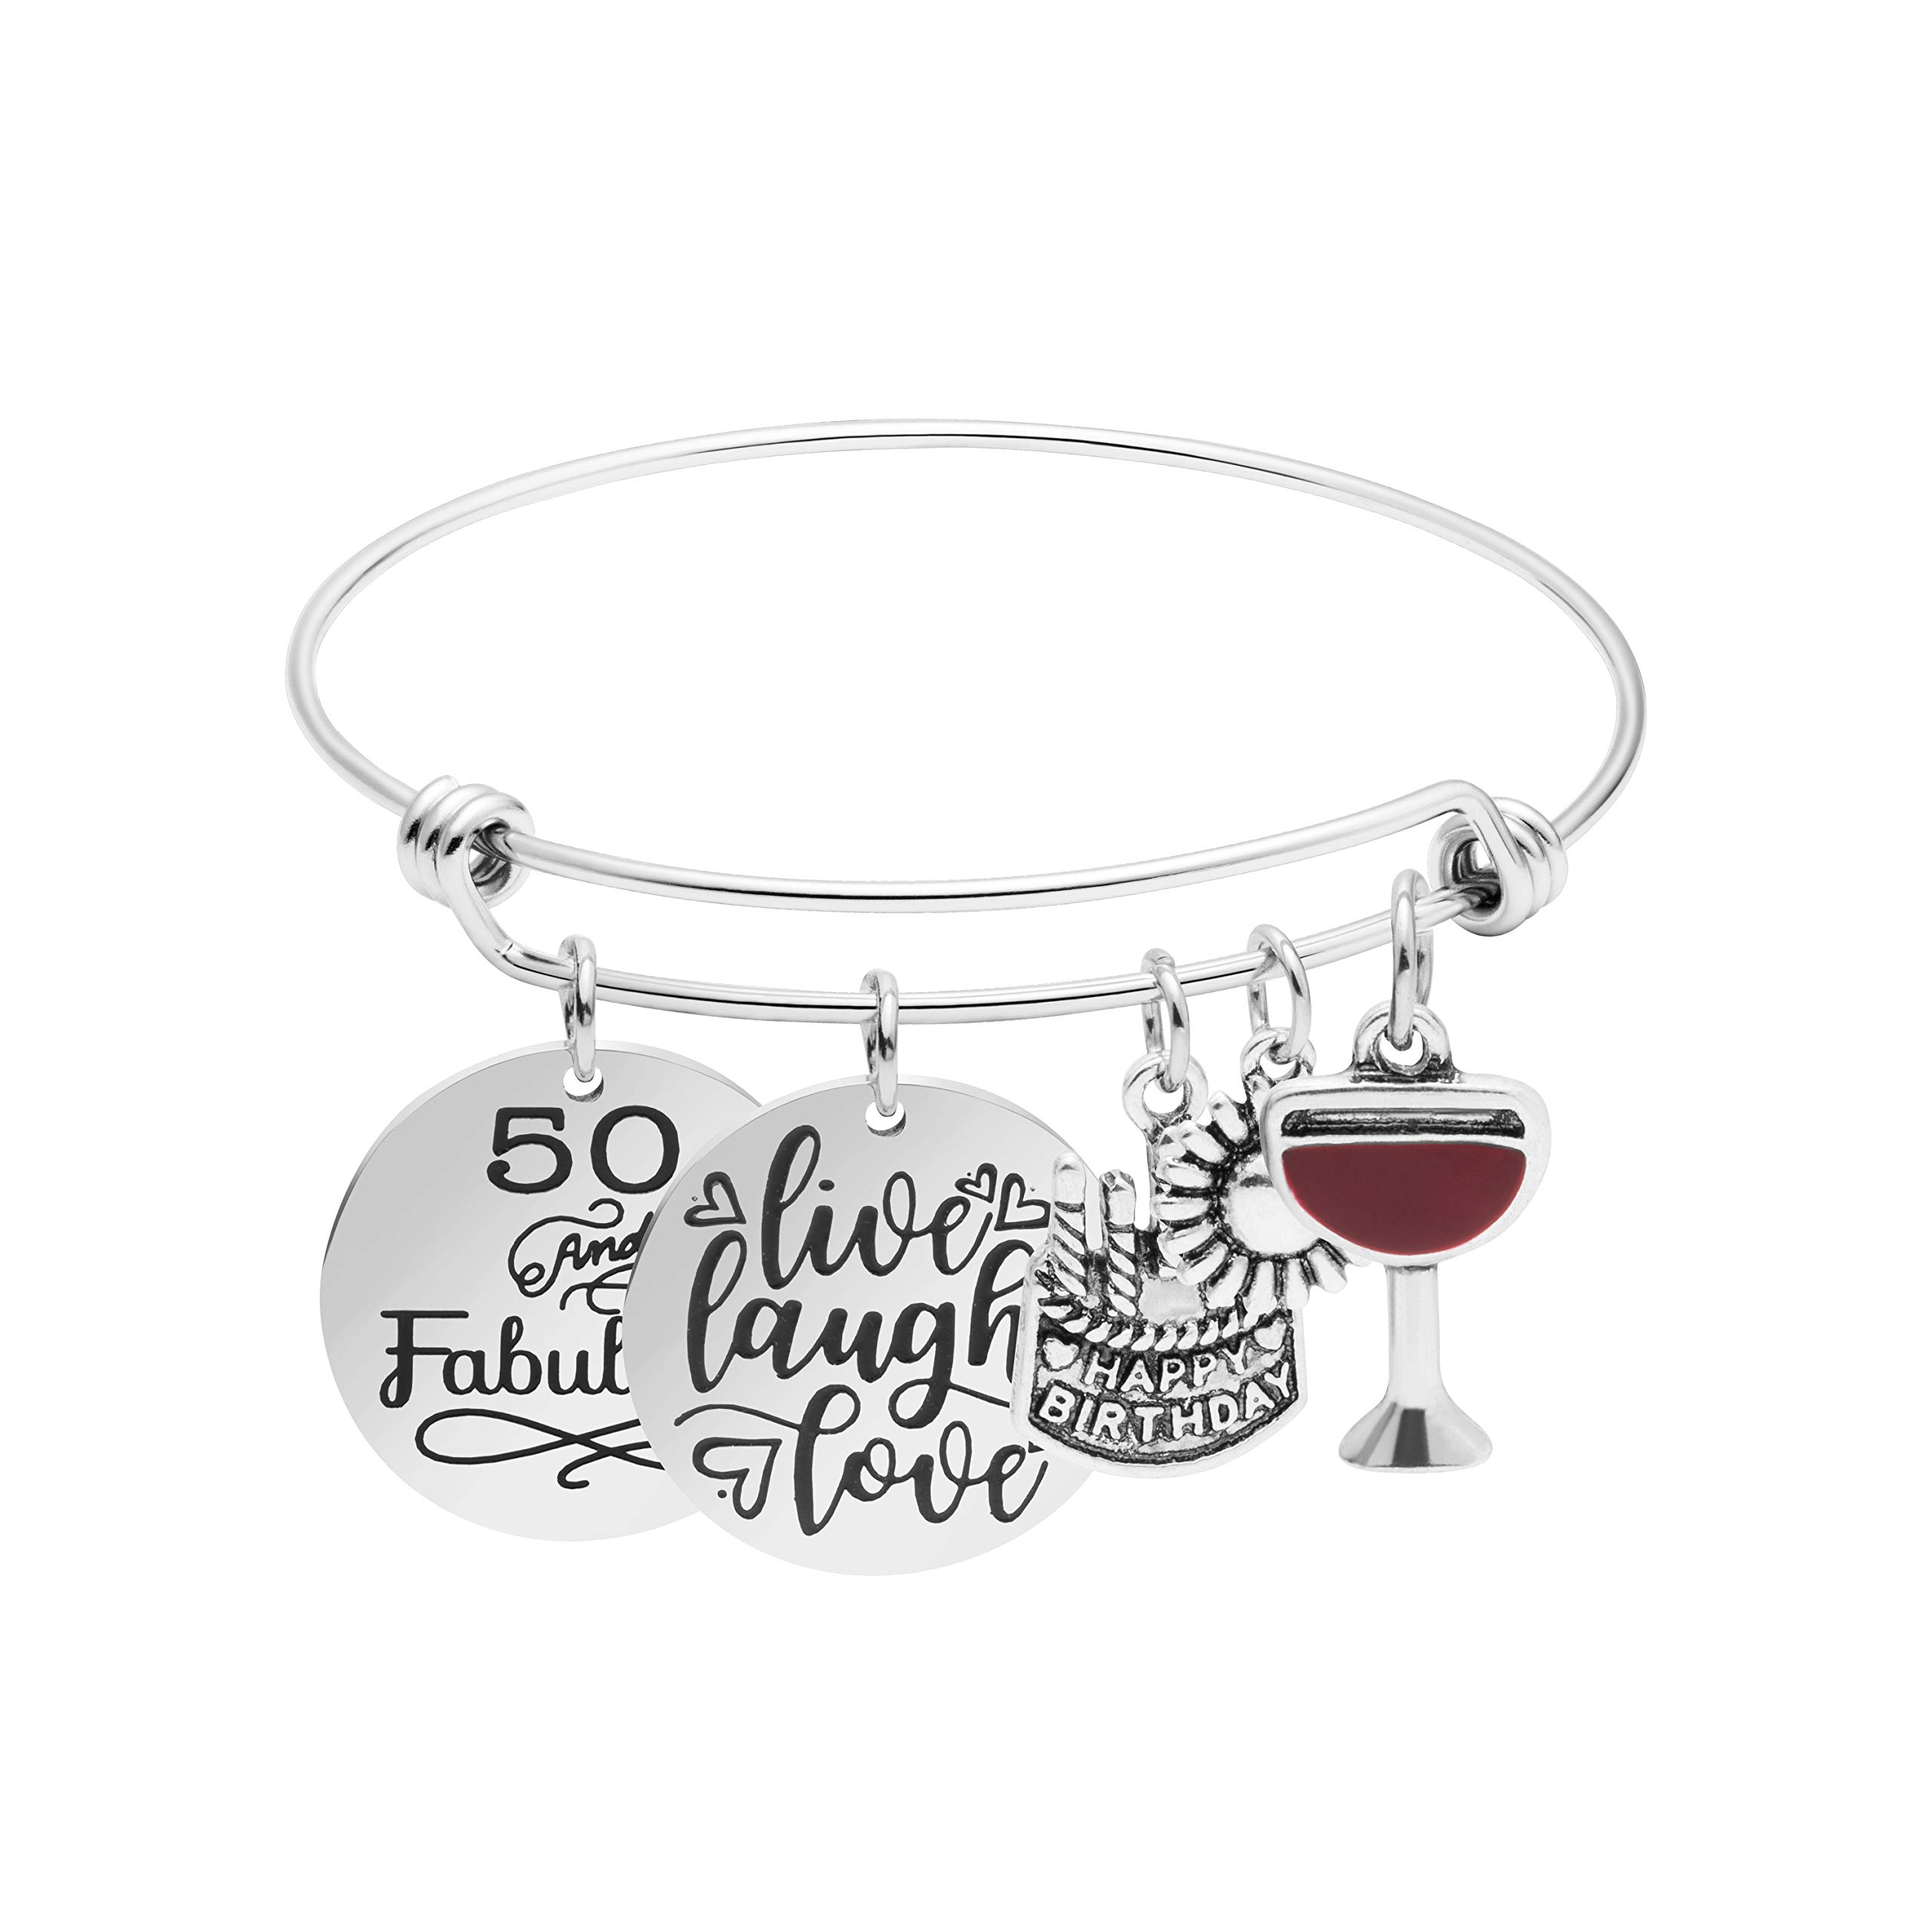 Awegift 50th Birthday Gifts for Women Stainless Steel Charm Bracelet Gift Jewellery